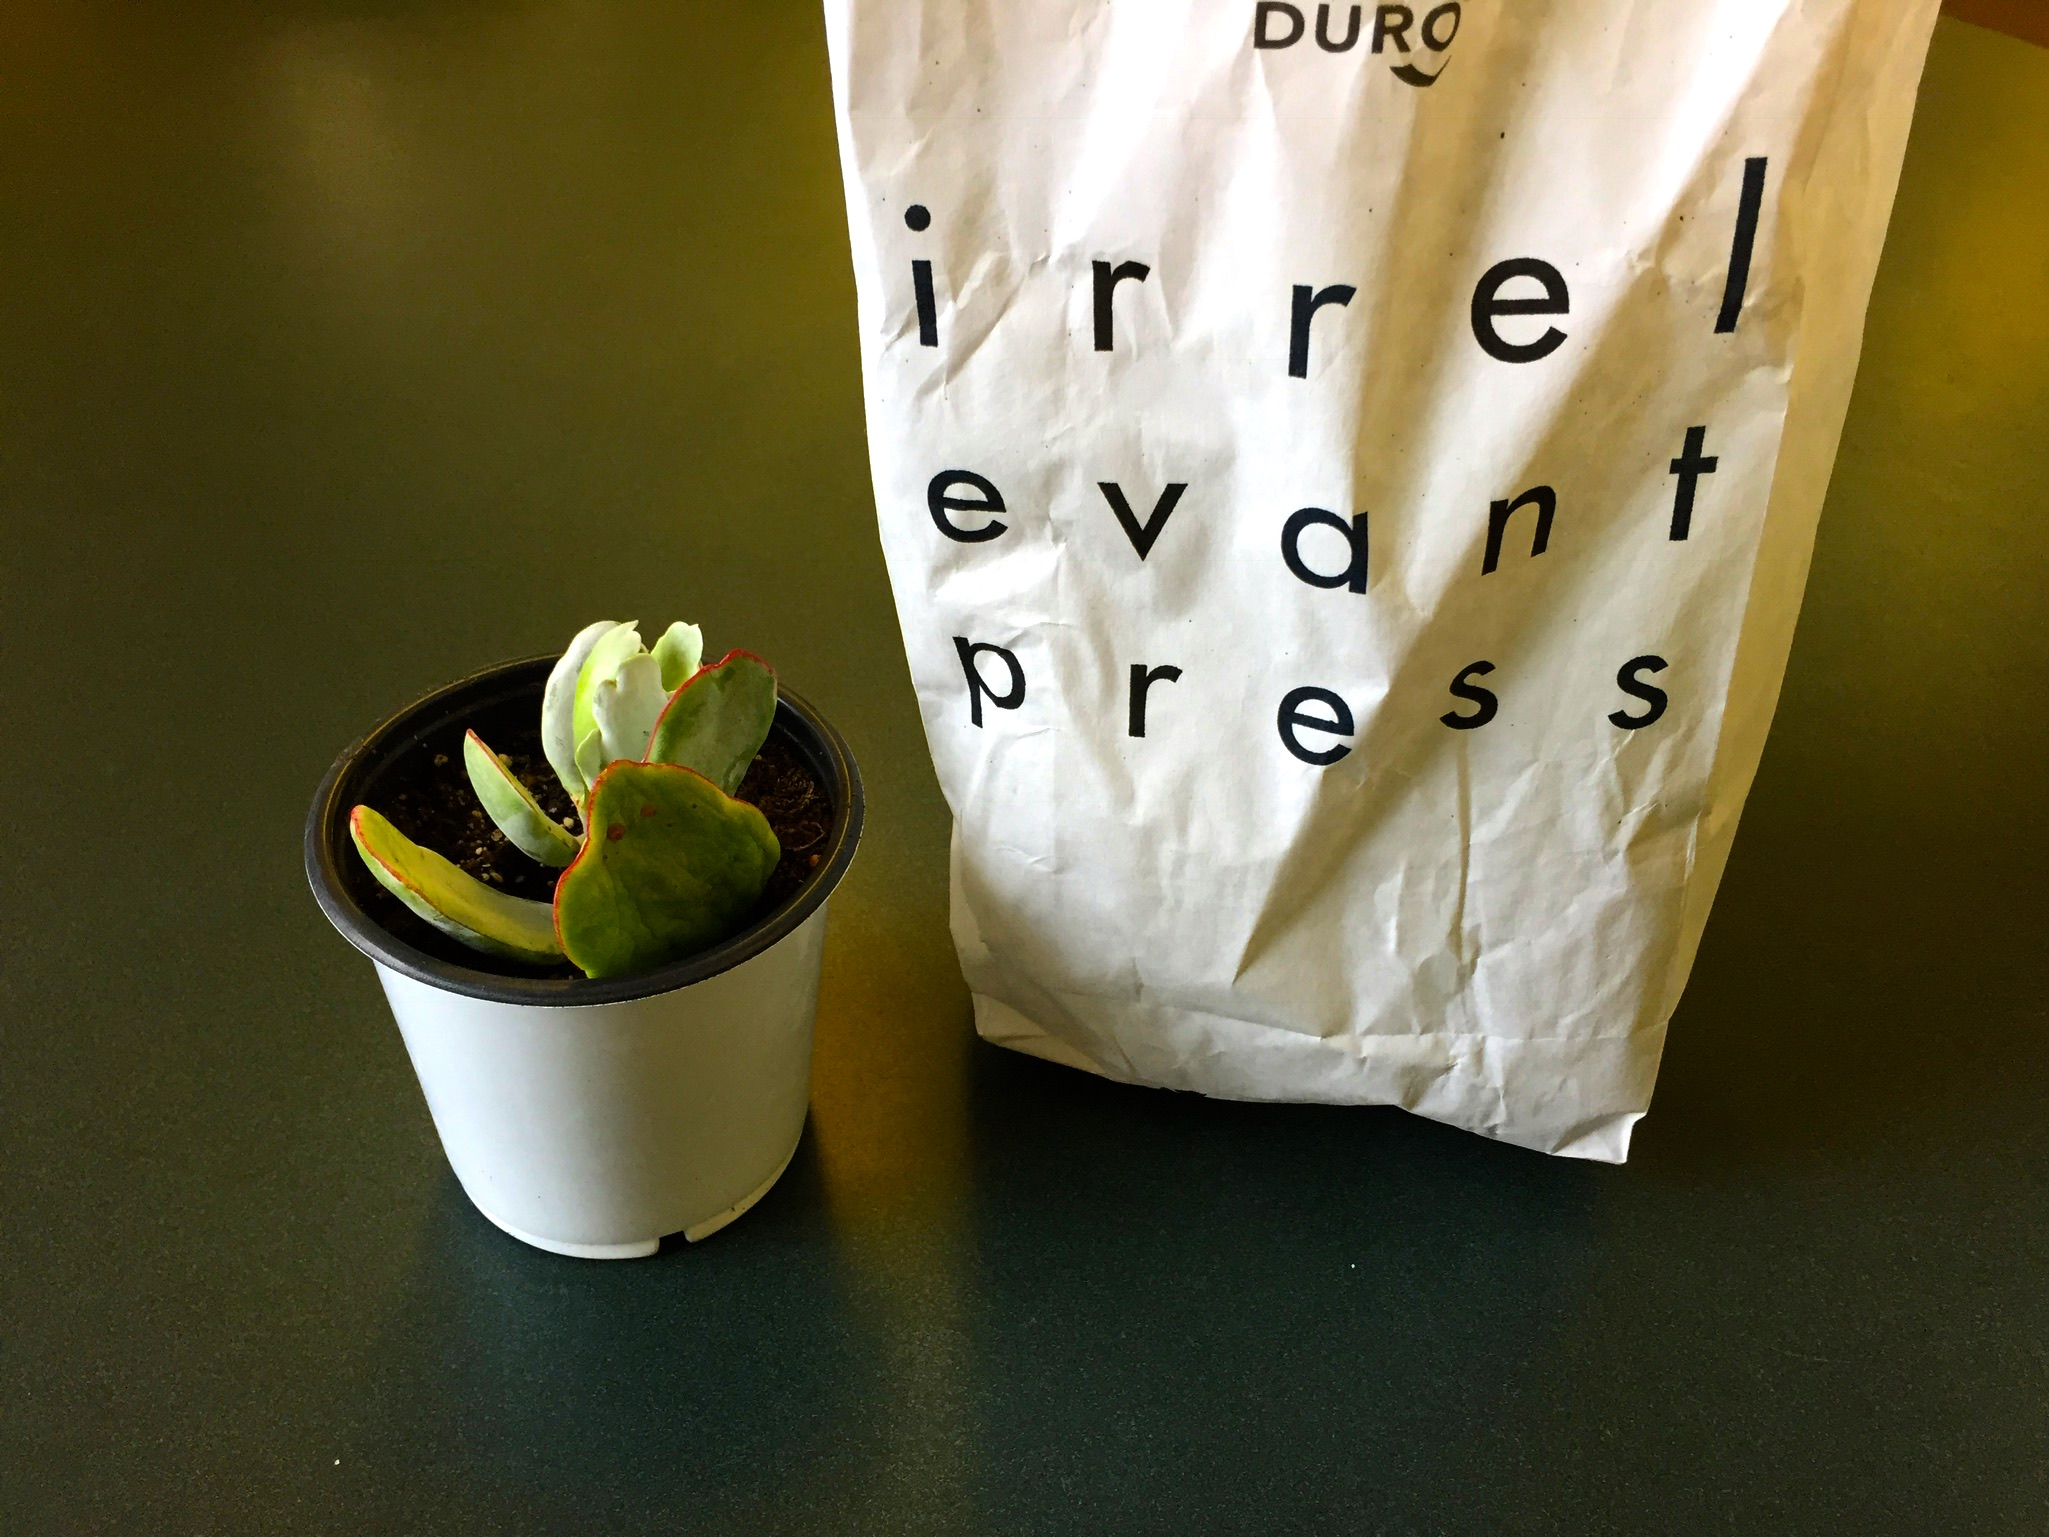 Irrelevant Press paper bag and a small plant.